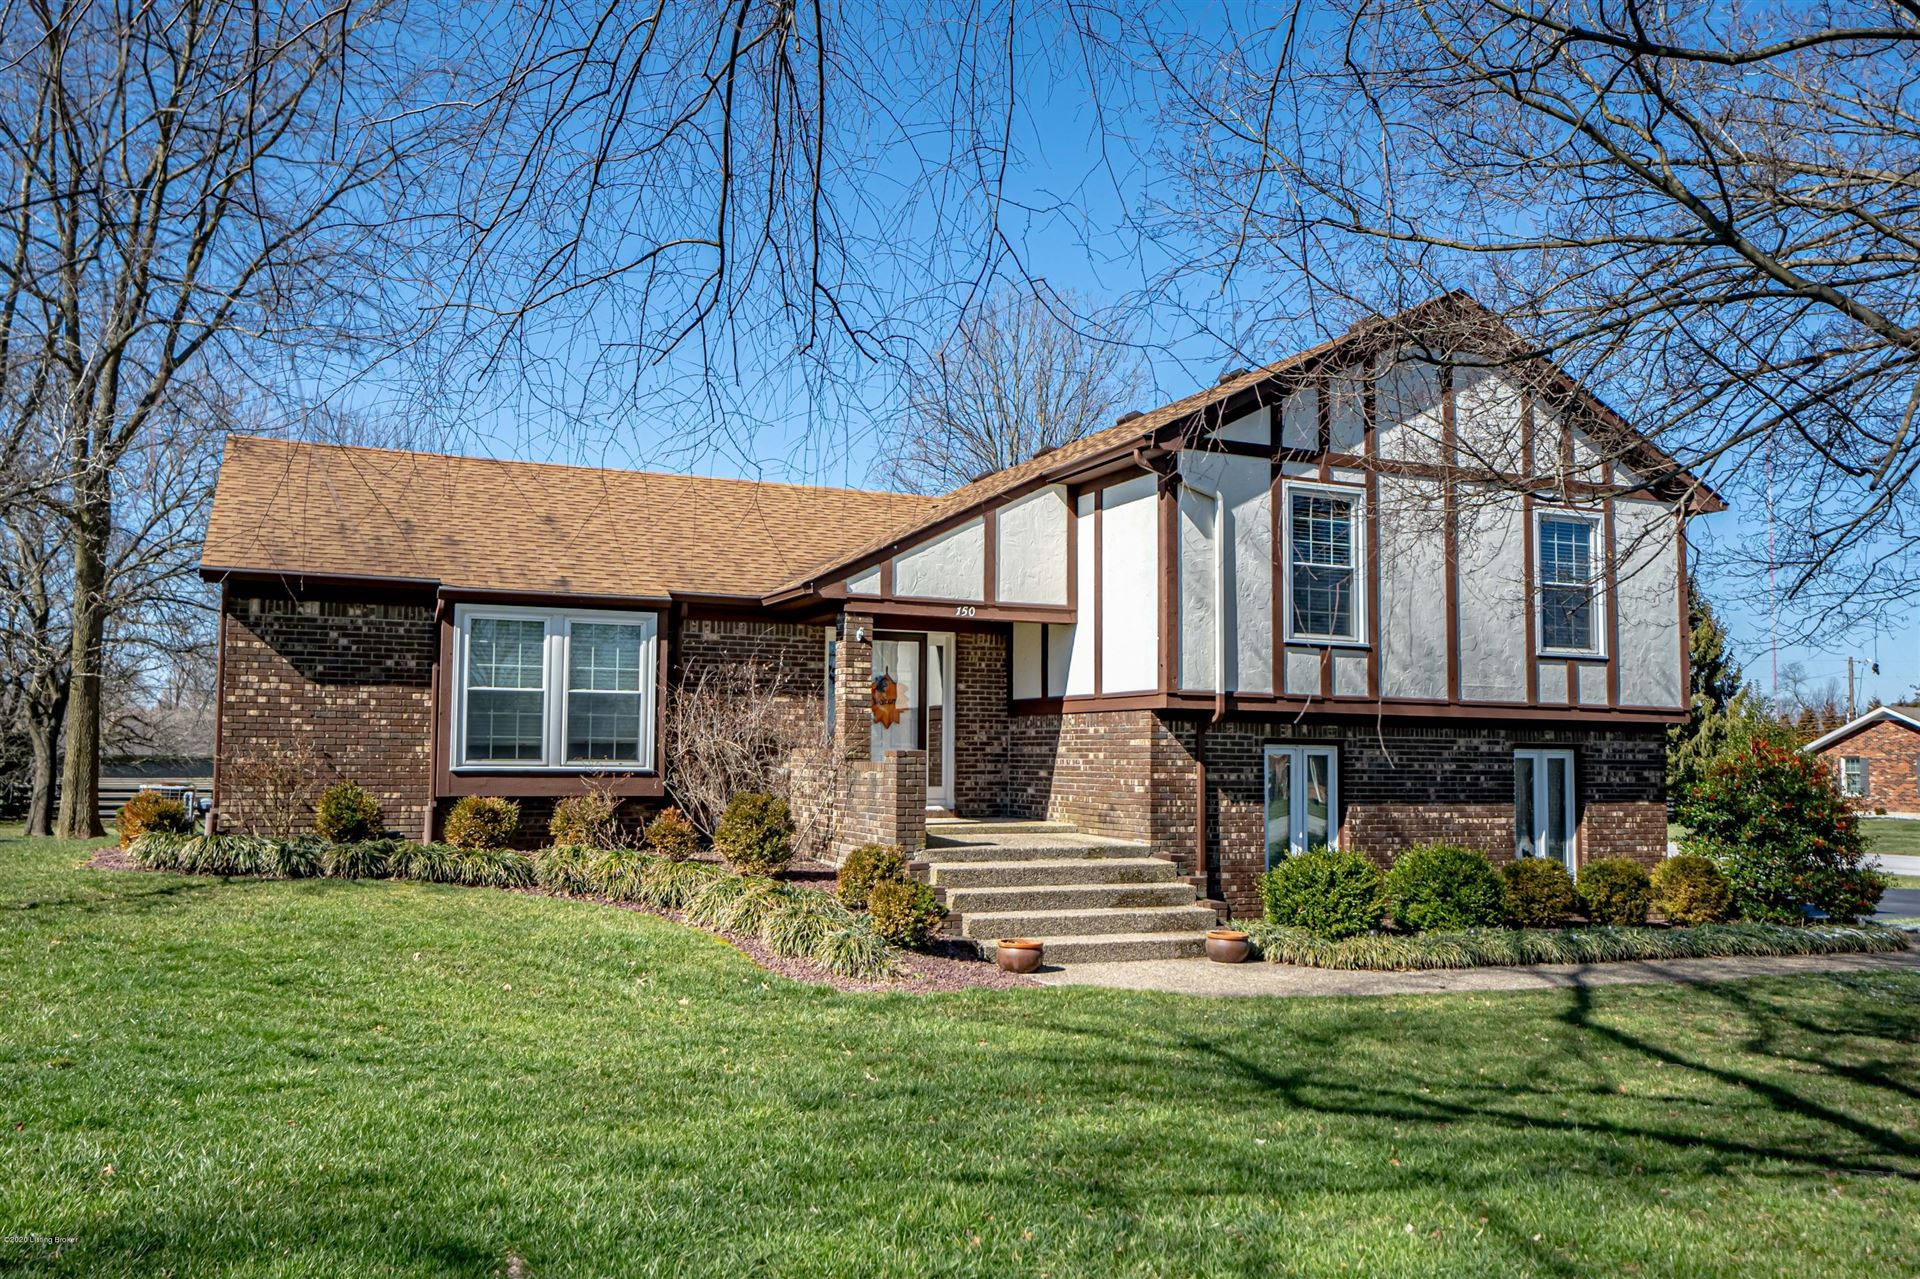 Property Image Of 150 Winding Way In Shelbyville, Ky